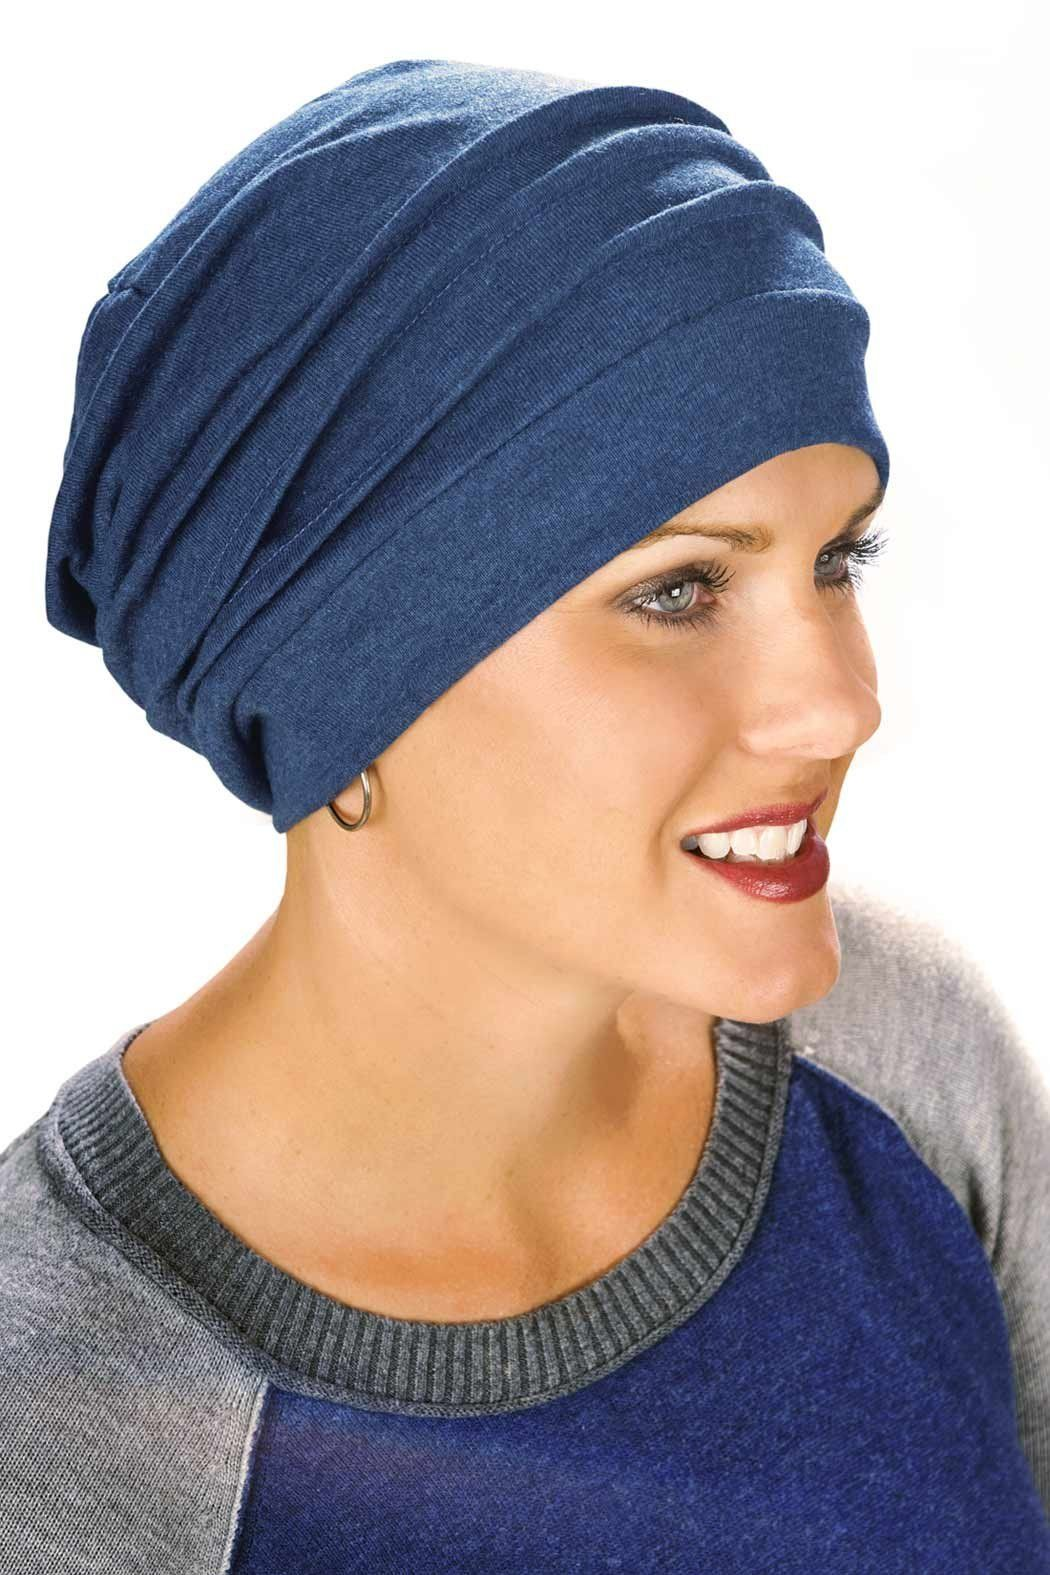 100% Cotton Slouchy Cap  Head Covering 4424bc76a965